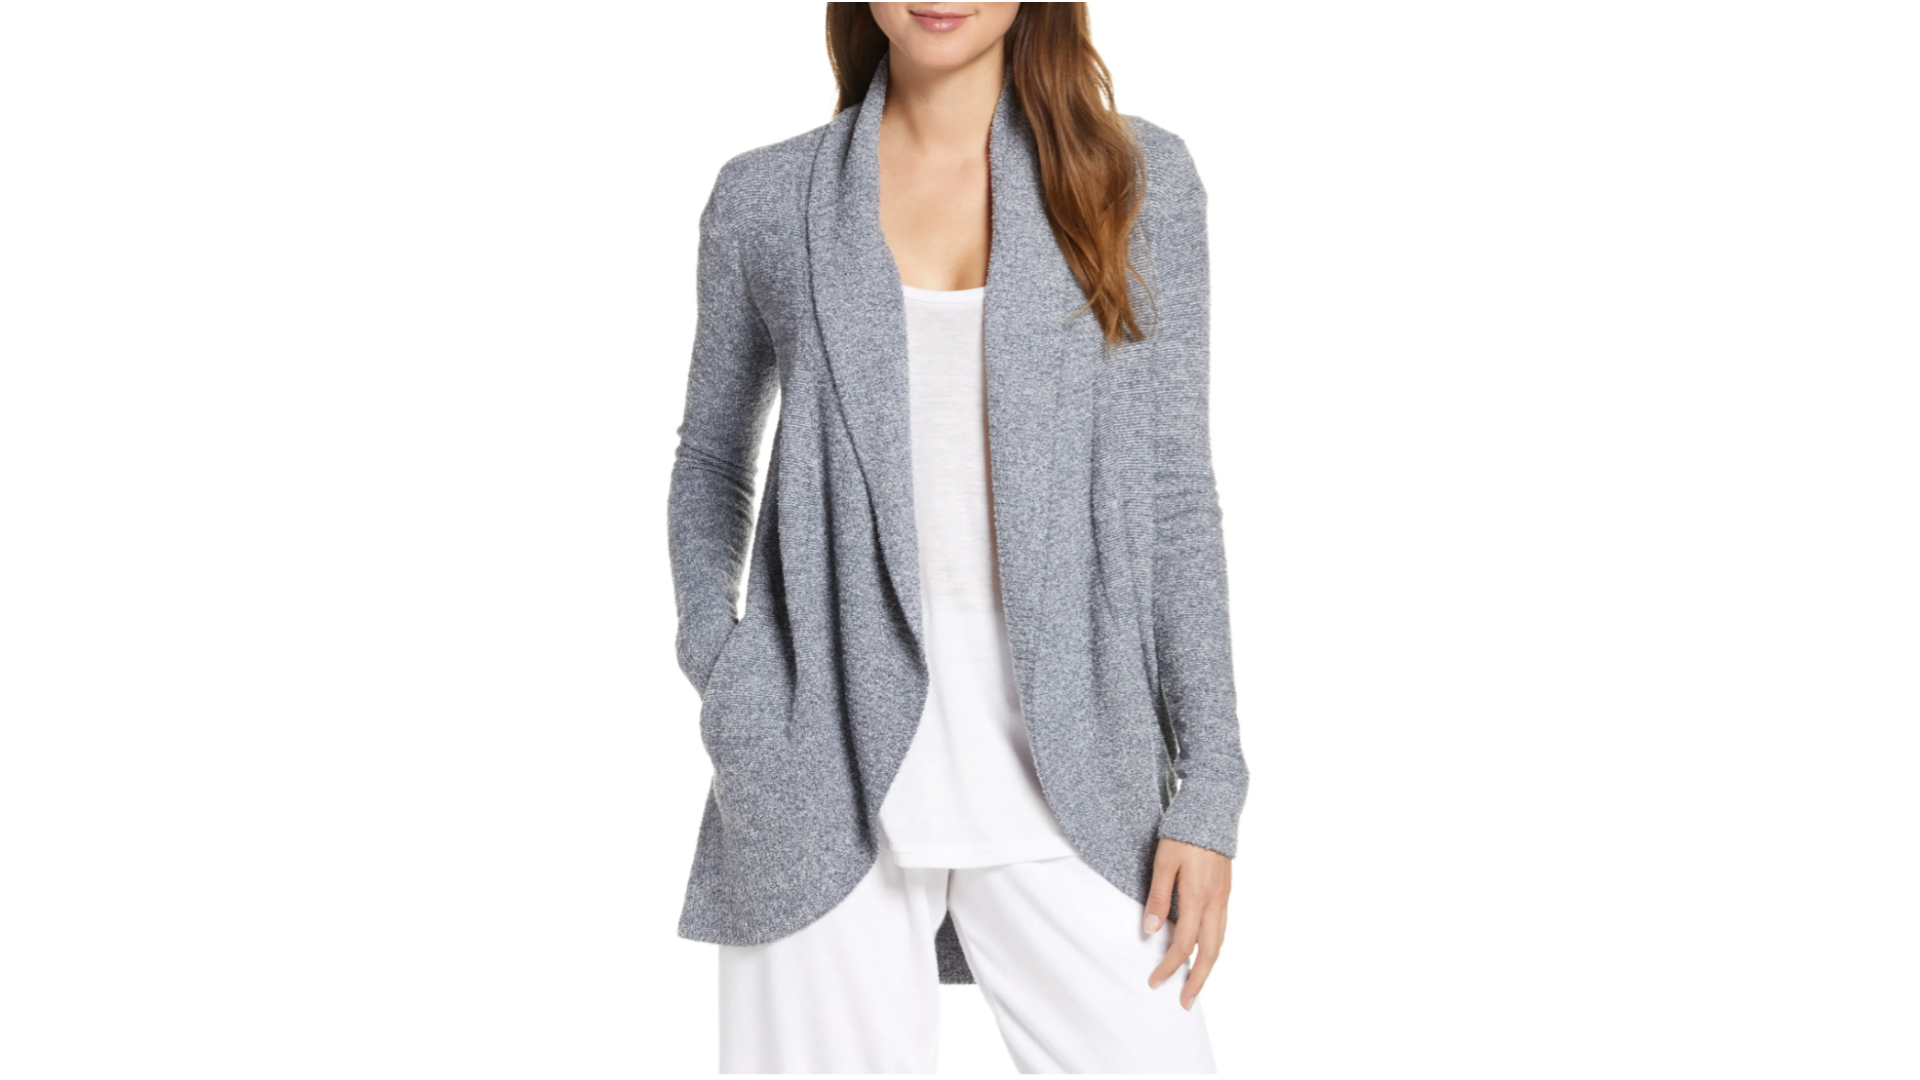 Nordstrom best clothing stores for women over 50